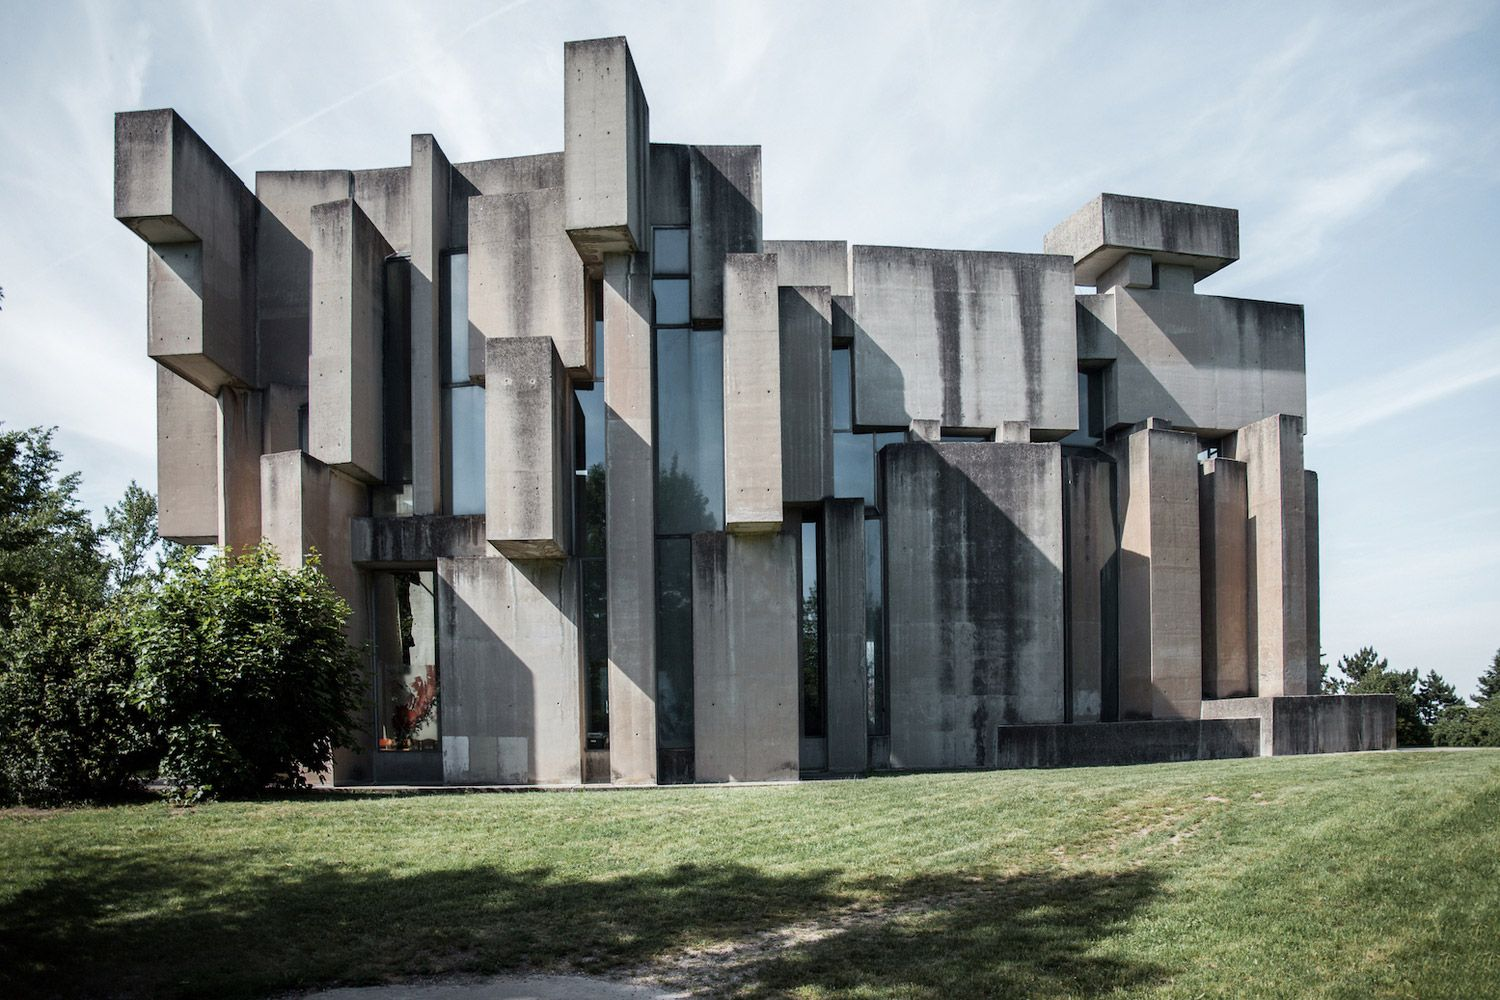 This Amazing Brutalist Church Is Built Like a Jenga Tower